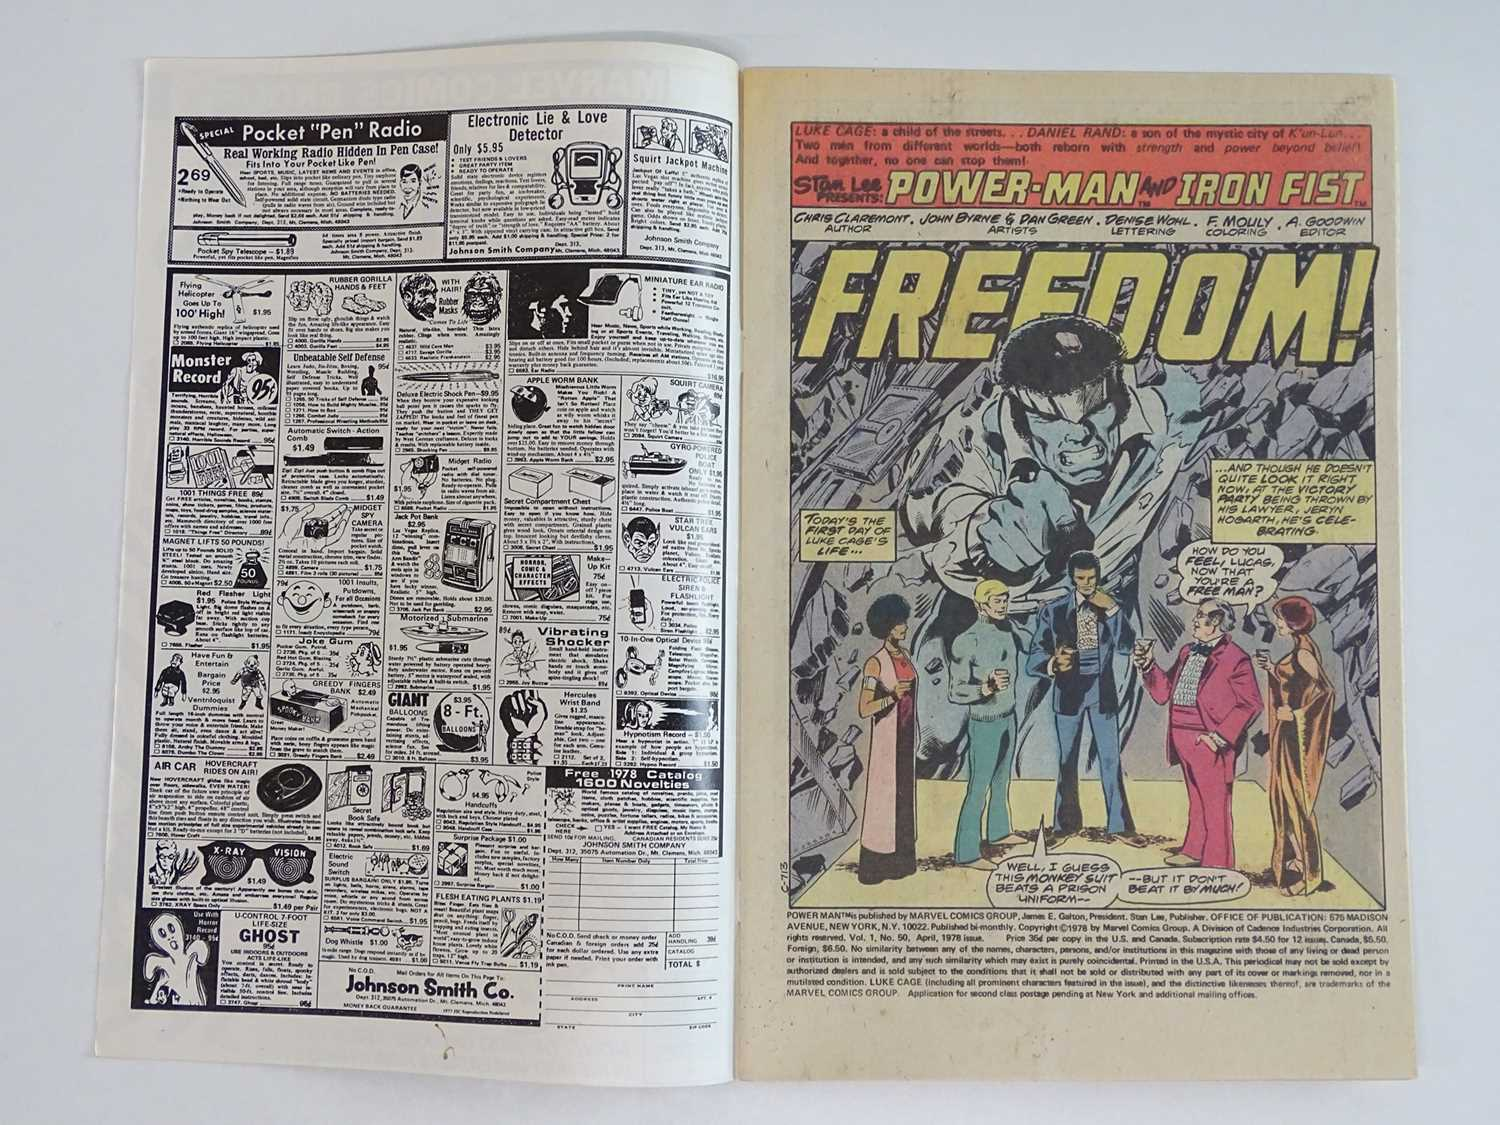 POWER MAN & IRON FIST #50 - (1978 - MARVEL) First appearance of the Heroes For Hire + Title - Image 3 of 9